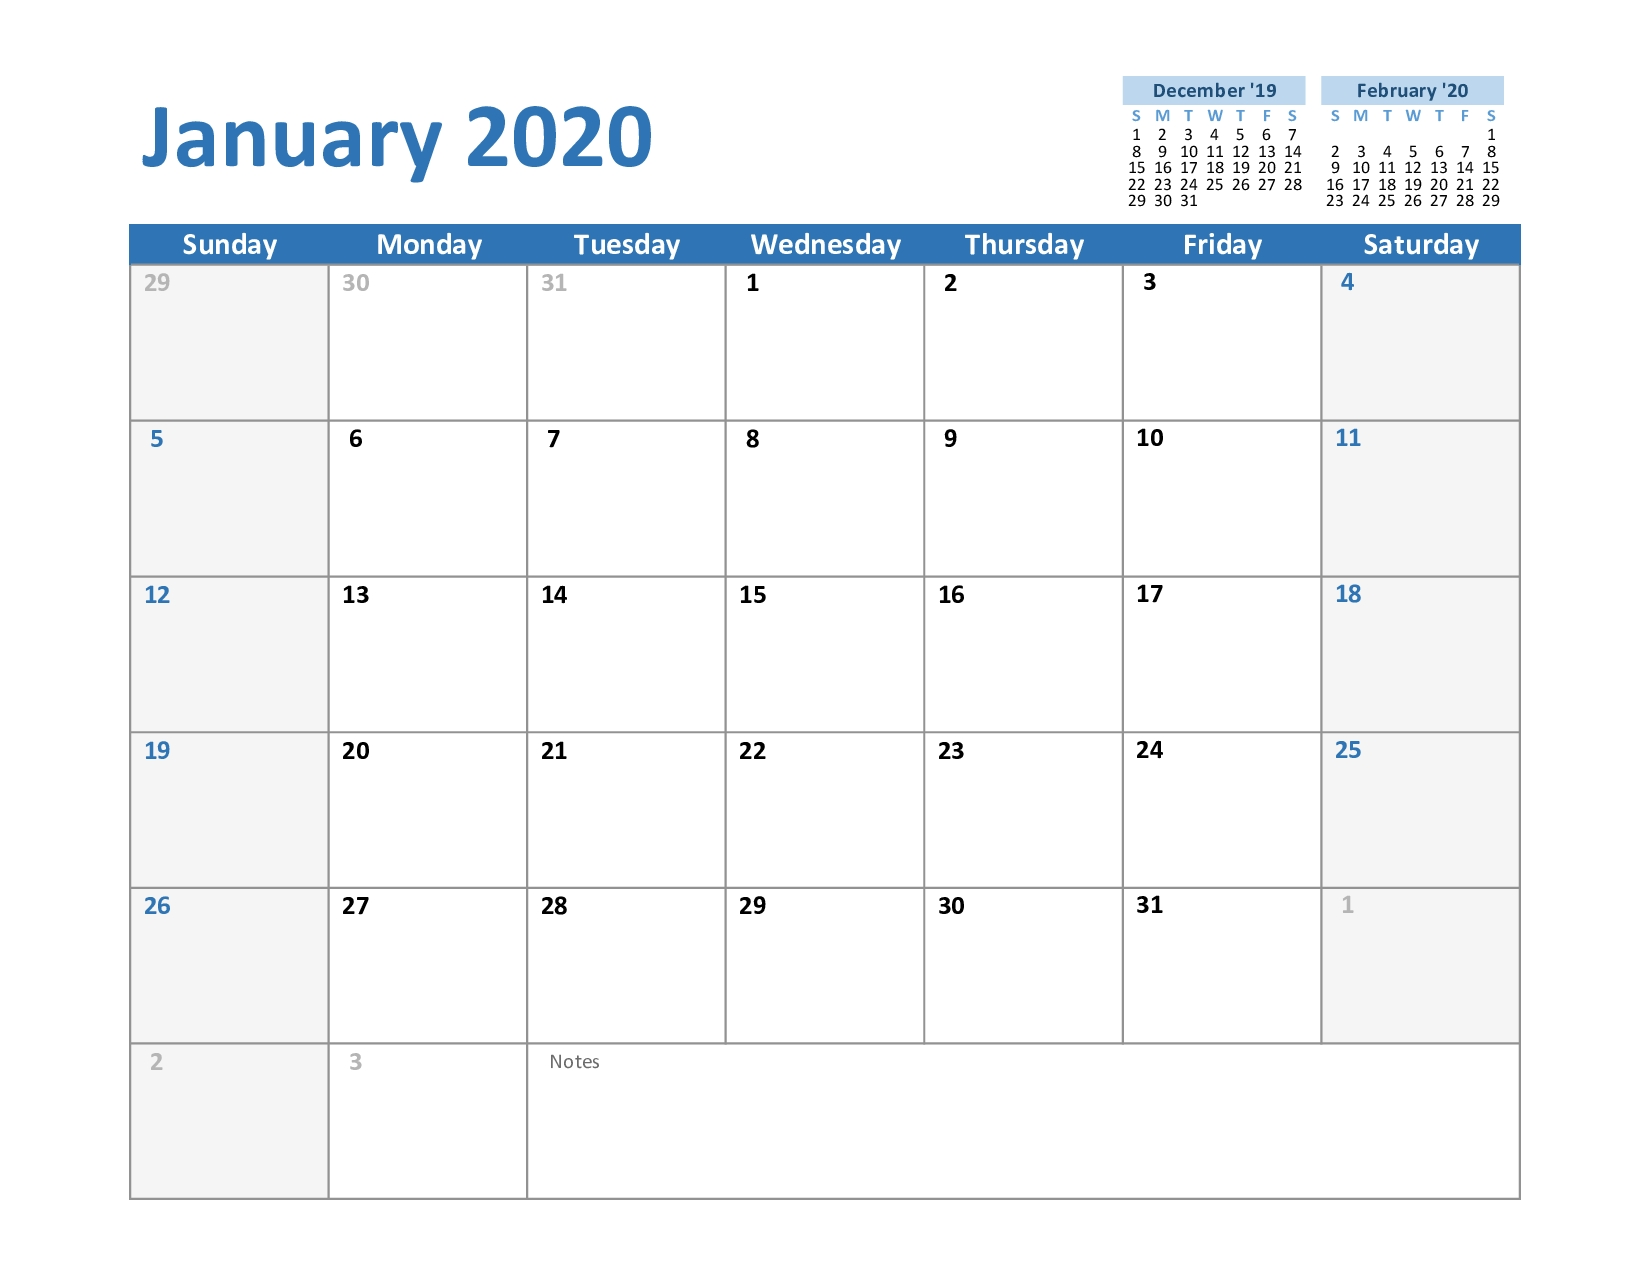 Free January 2020 Printable Calendar Template In Pdf, Word, Excel with regard to Special Days In 2020